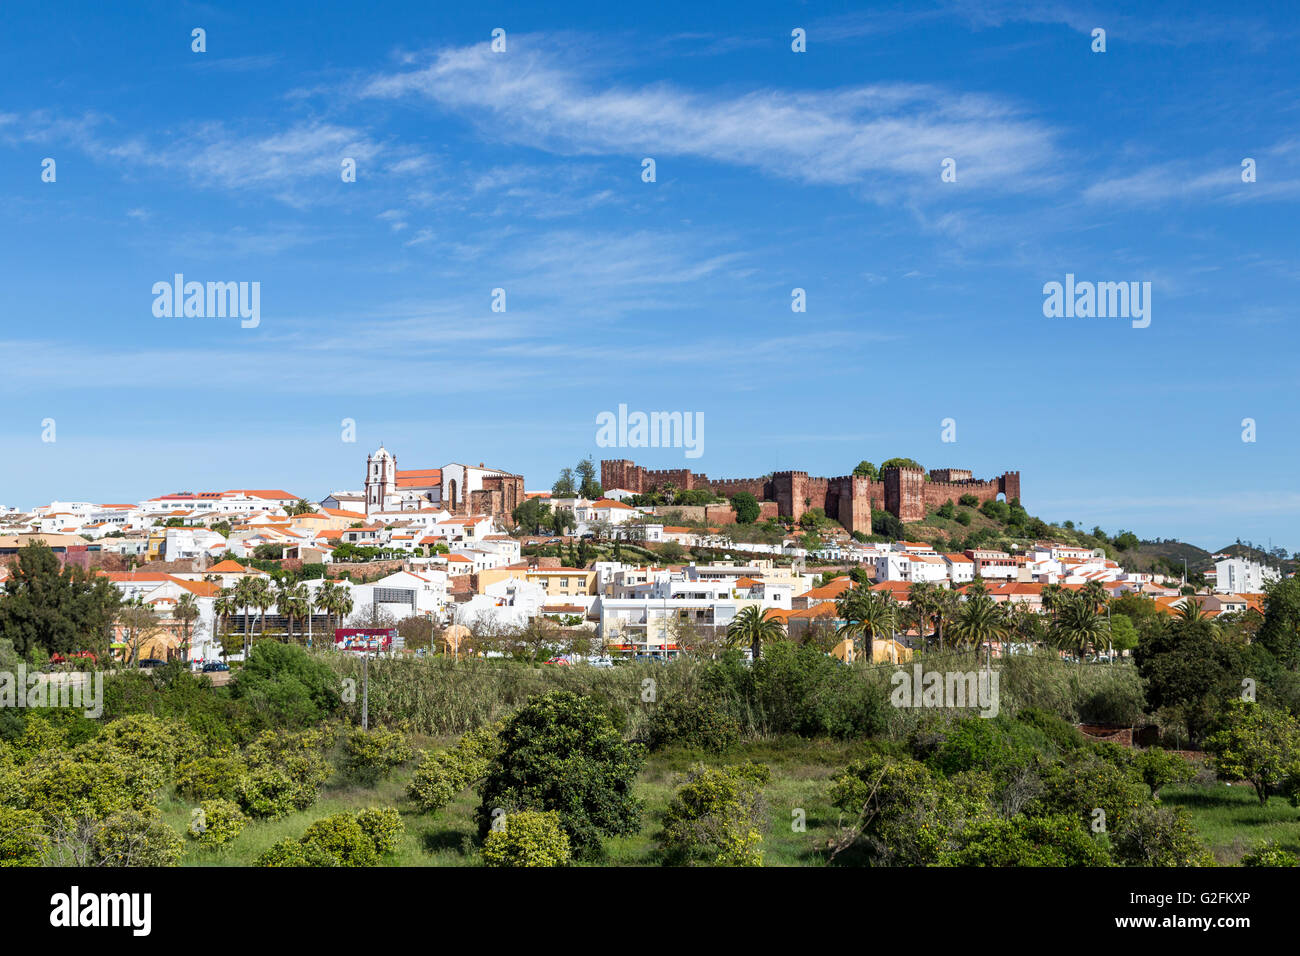 Castle and town, Silves, Algarve, Portugal Stock Photo